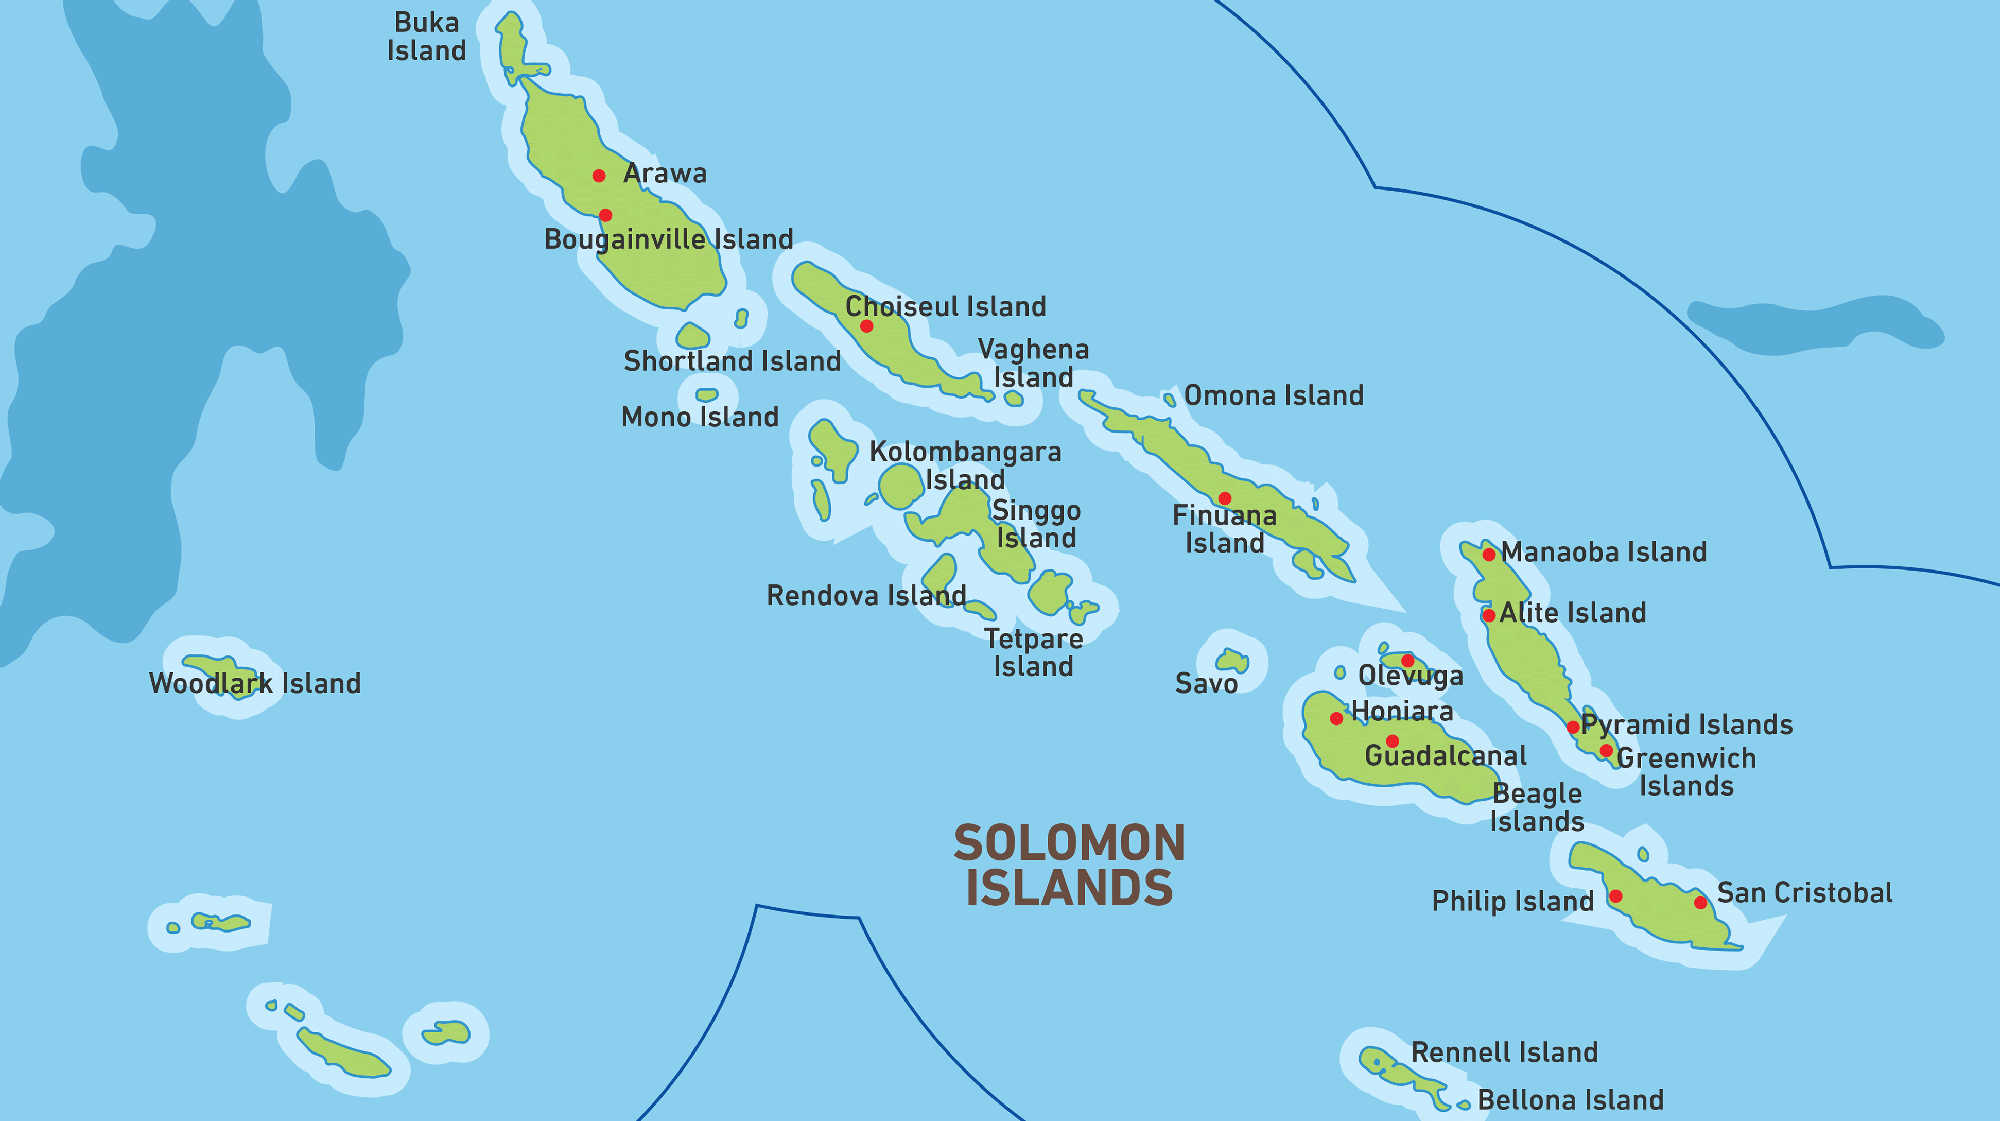 Map of Kacific 1 satellite coverage of Solomon Islands